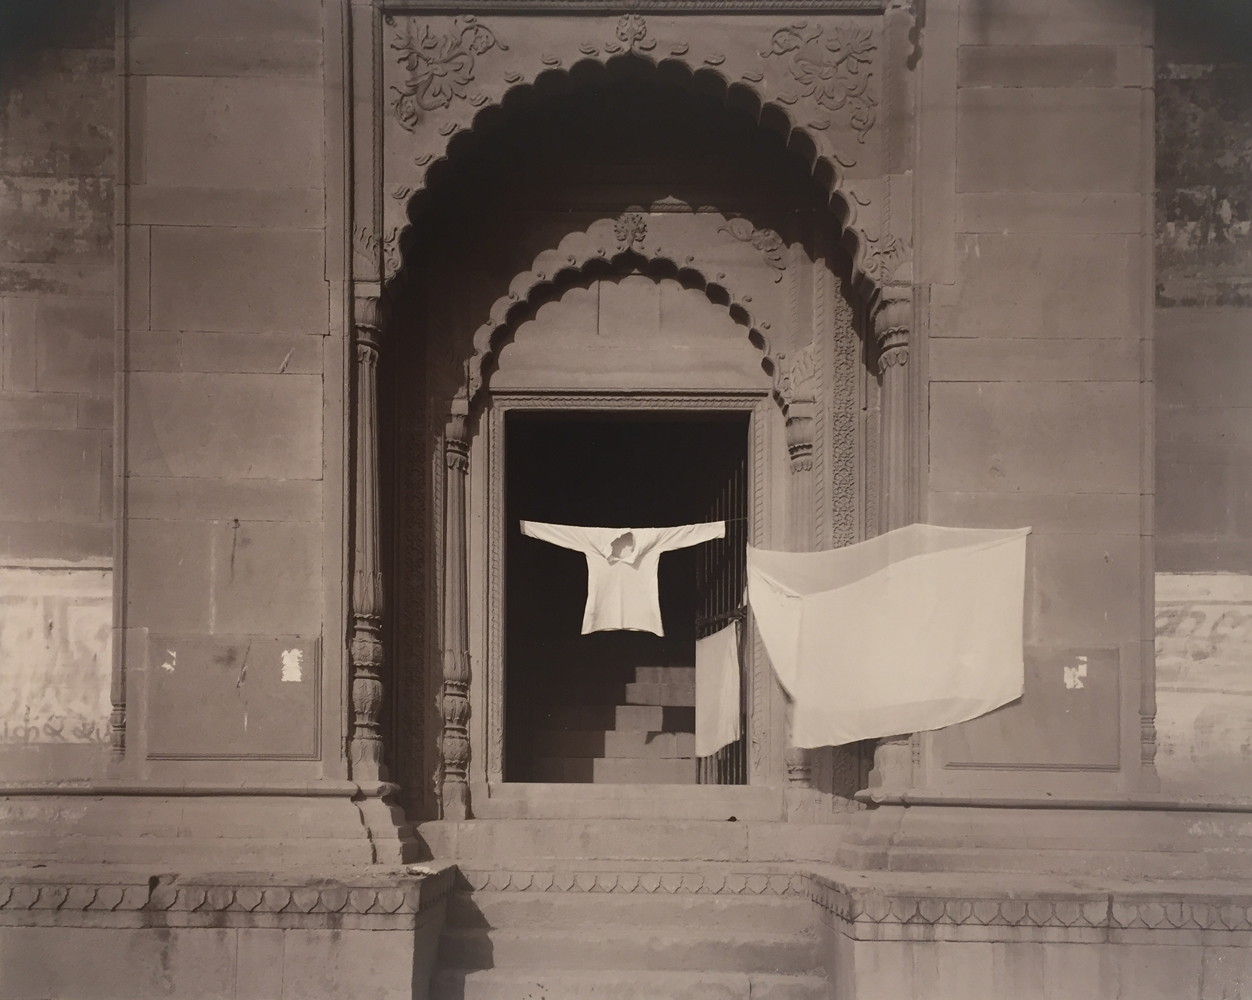 Linda Connor, Shirt, Banaras, India, 1979, gold toned print, 8 x 10 inches